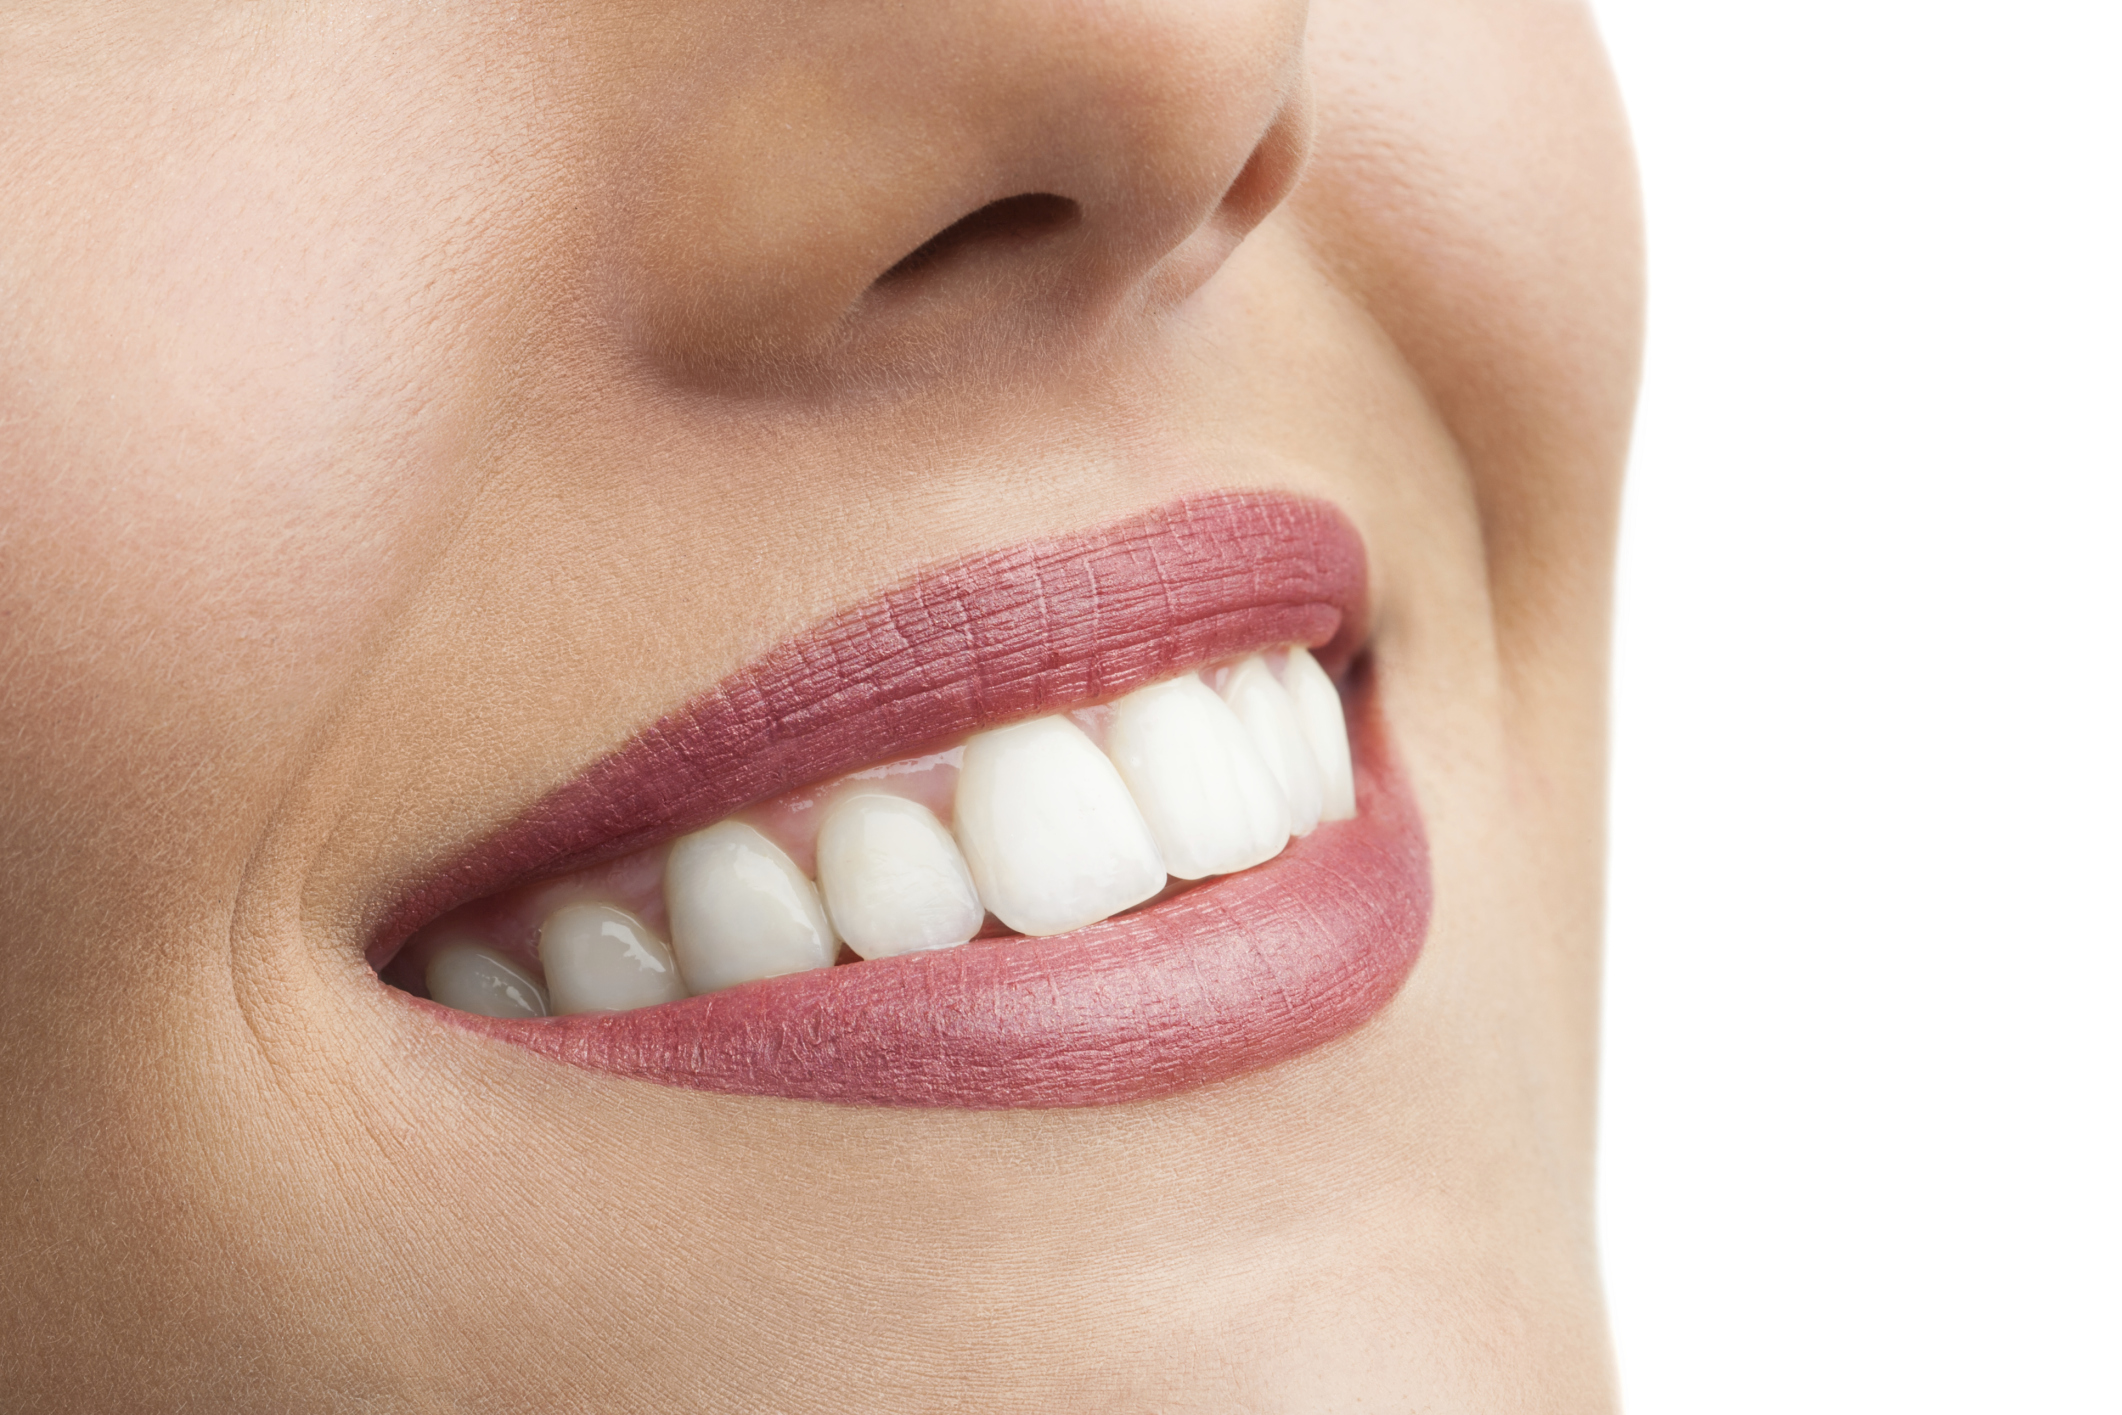 Evidence to support the role of orthodontics in improving well-being